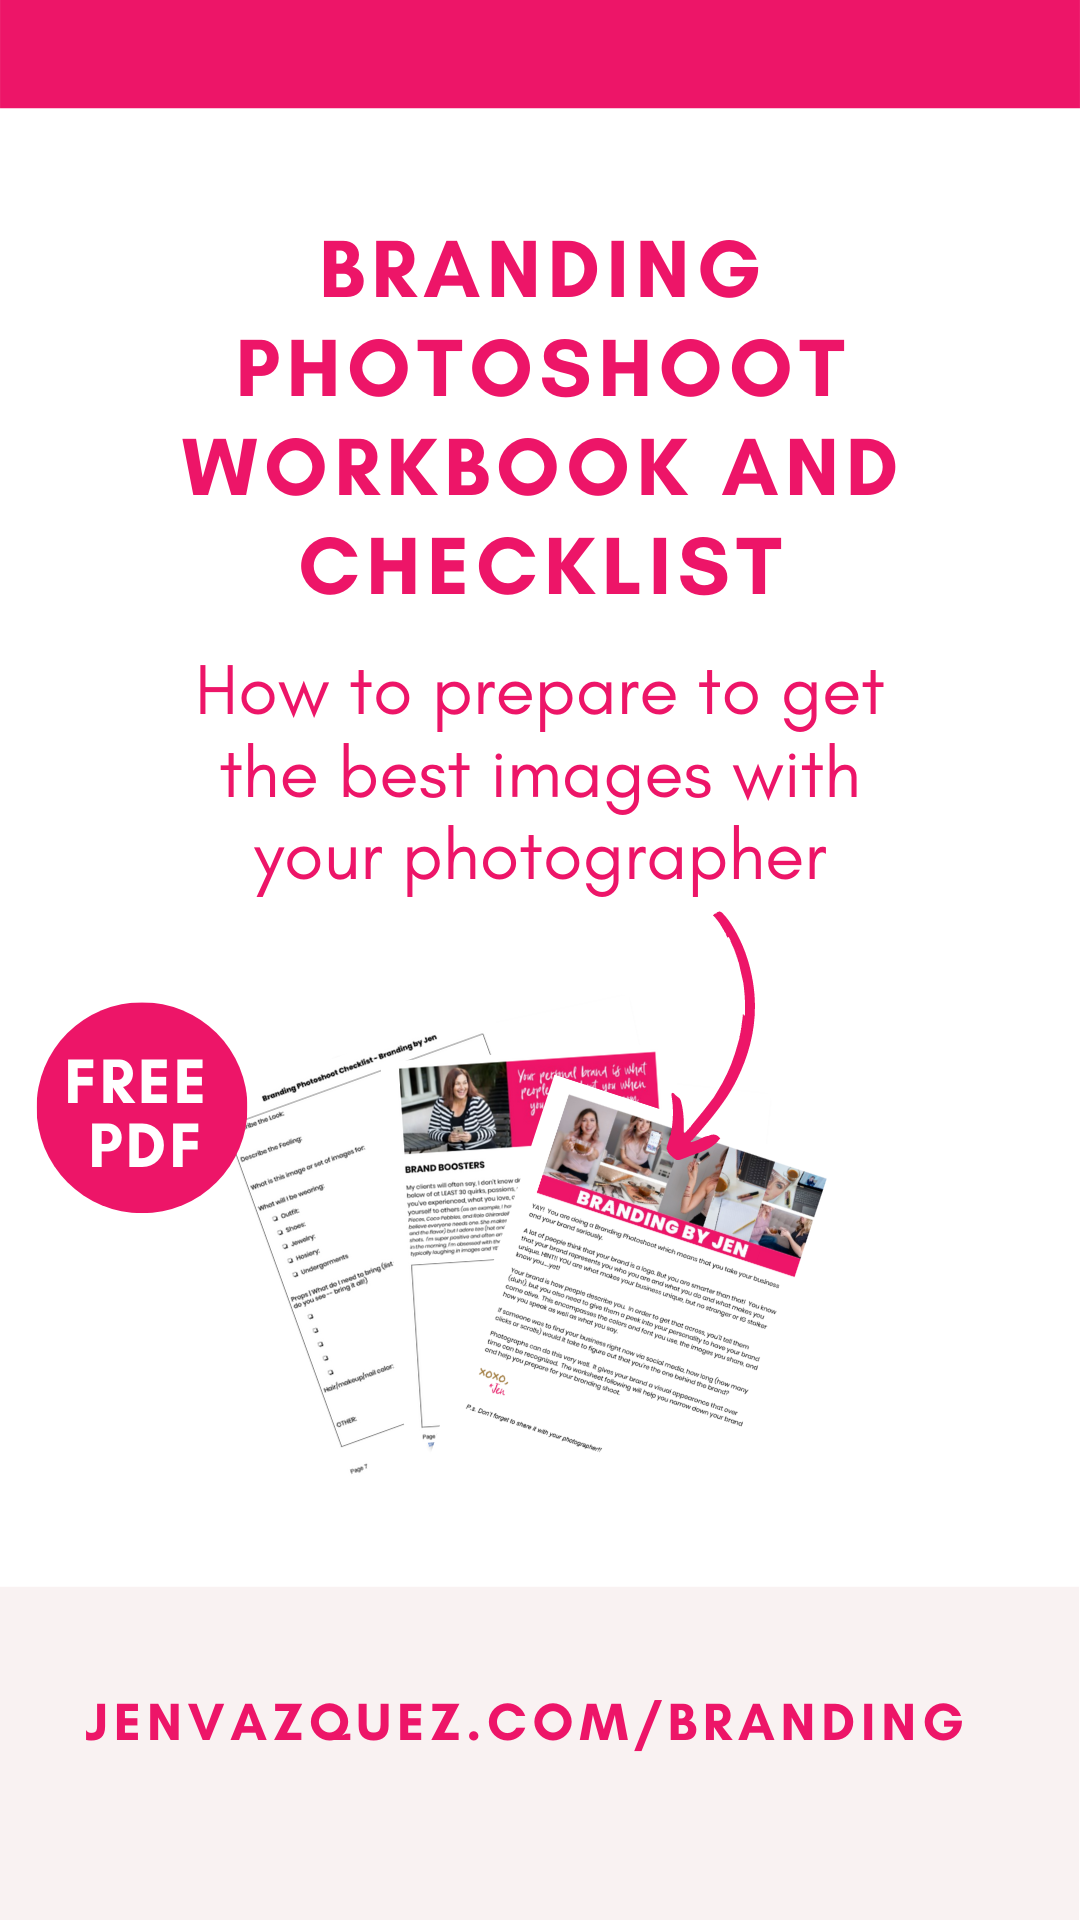 Branding Photoshoot Workbook and Checklist 4